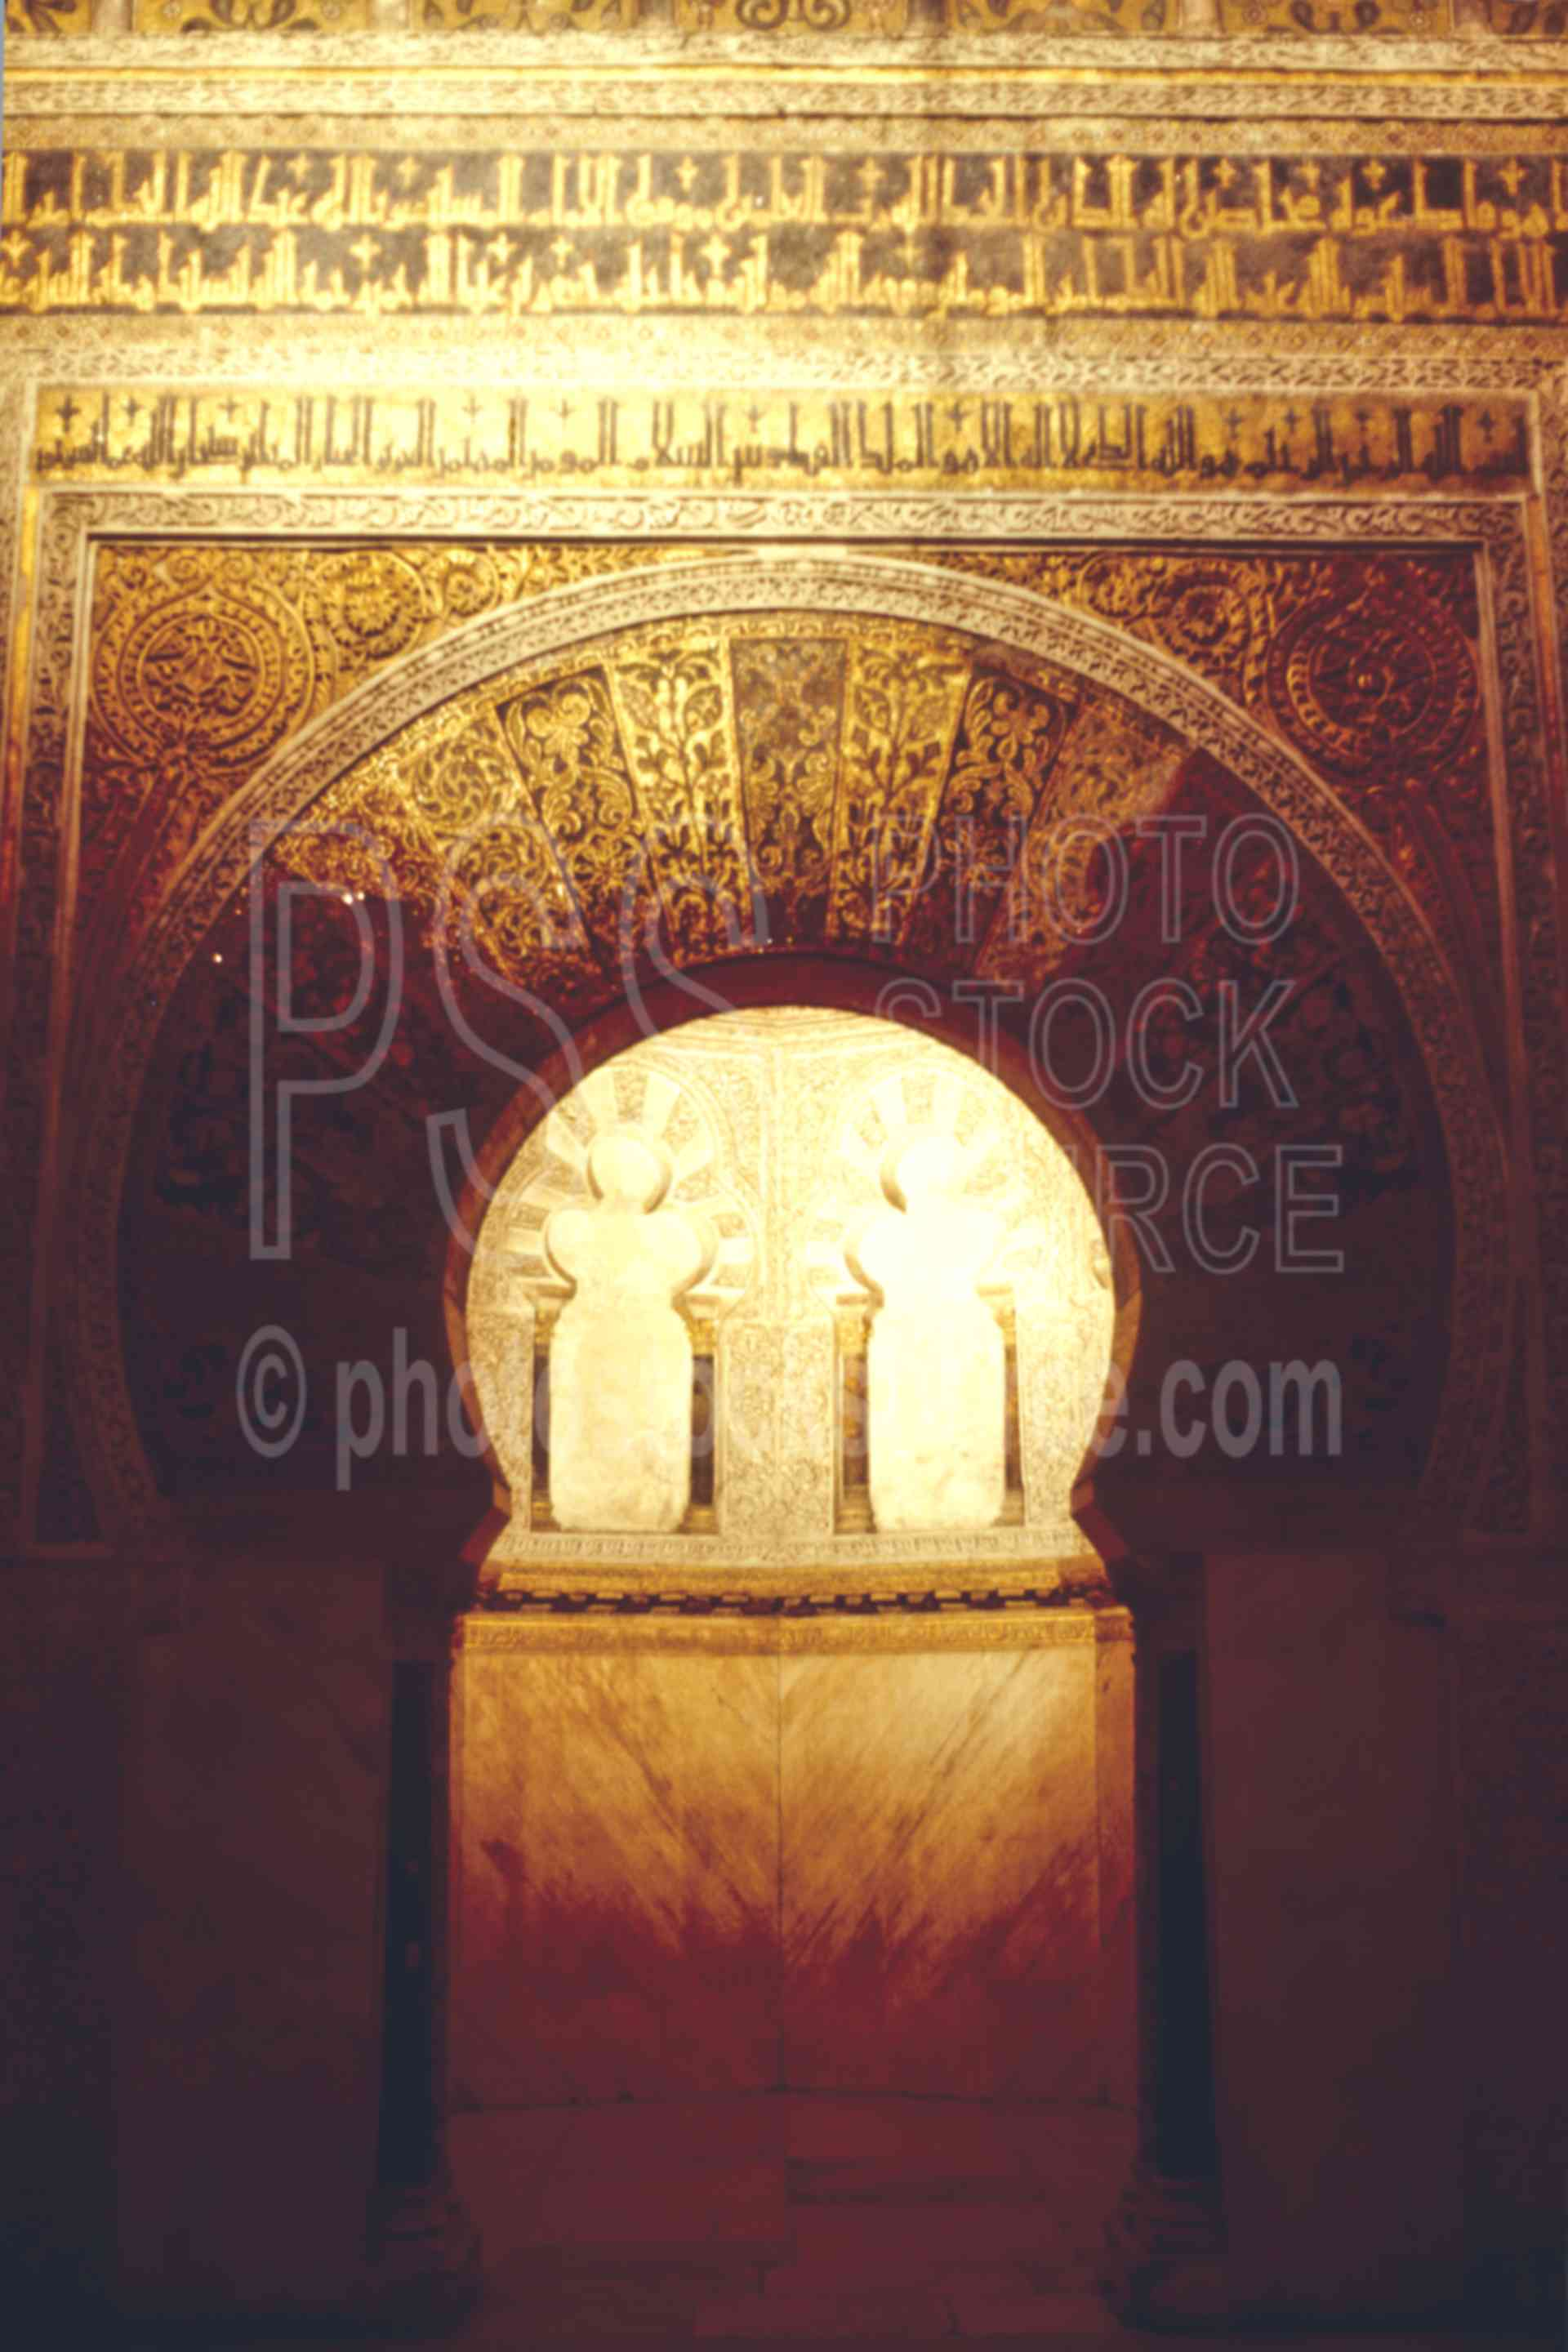 Mezquita Mihrab,cathedral,europe,mezquita,mihrab,moorish arch,architecture,churches,religion